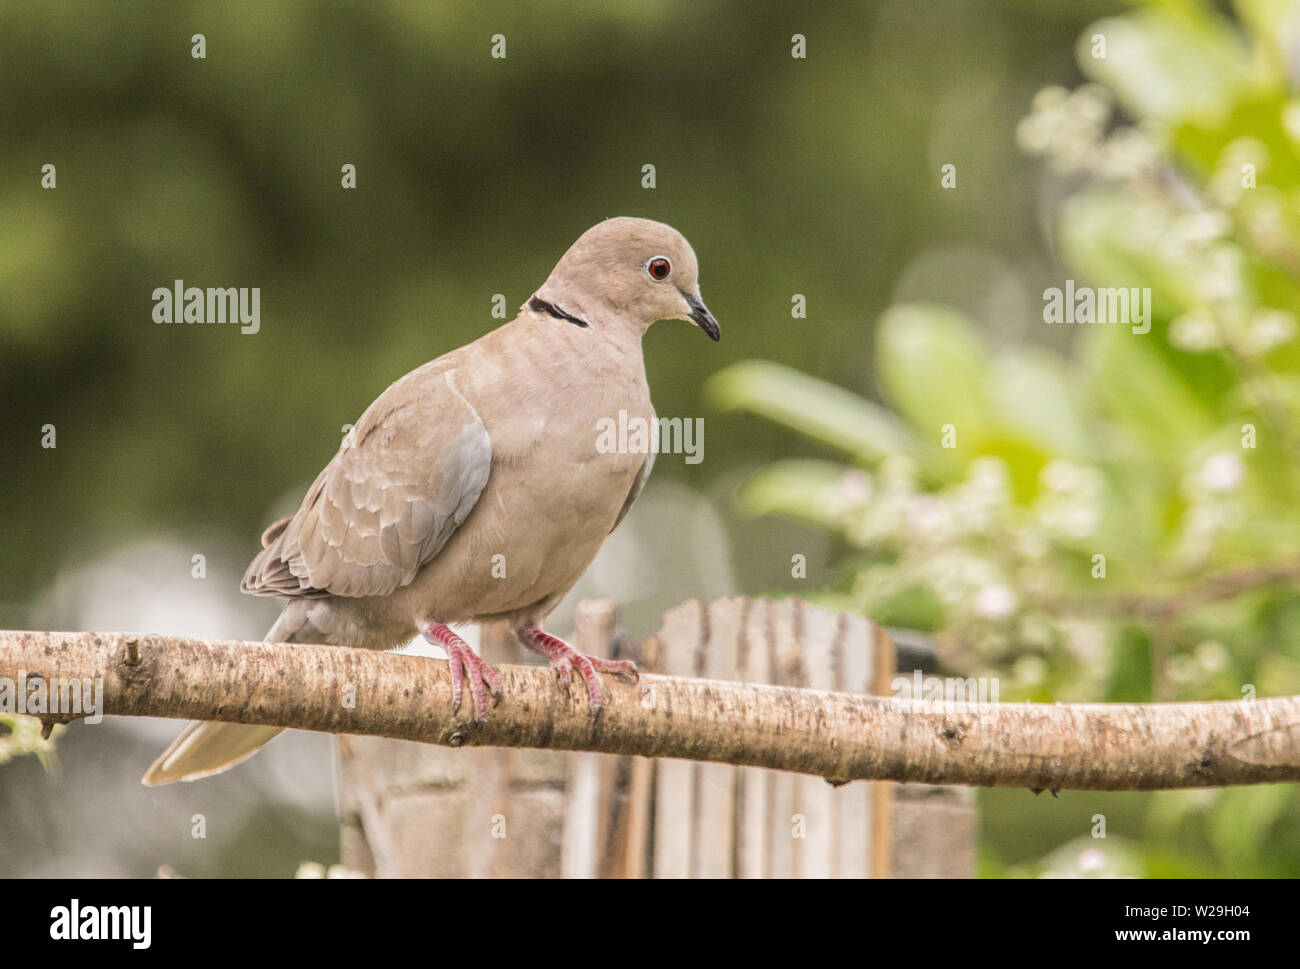 Collared Dove, perched on a branch in a British Garden in Spring, facing left and enjoying the sunshine - Stock Image